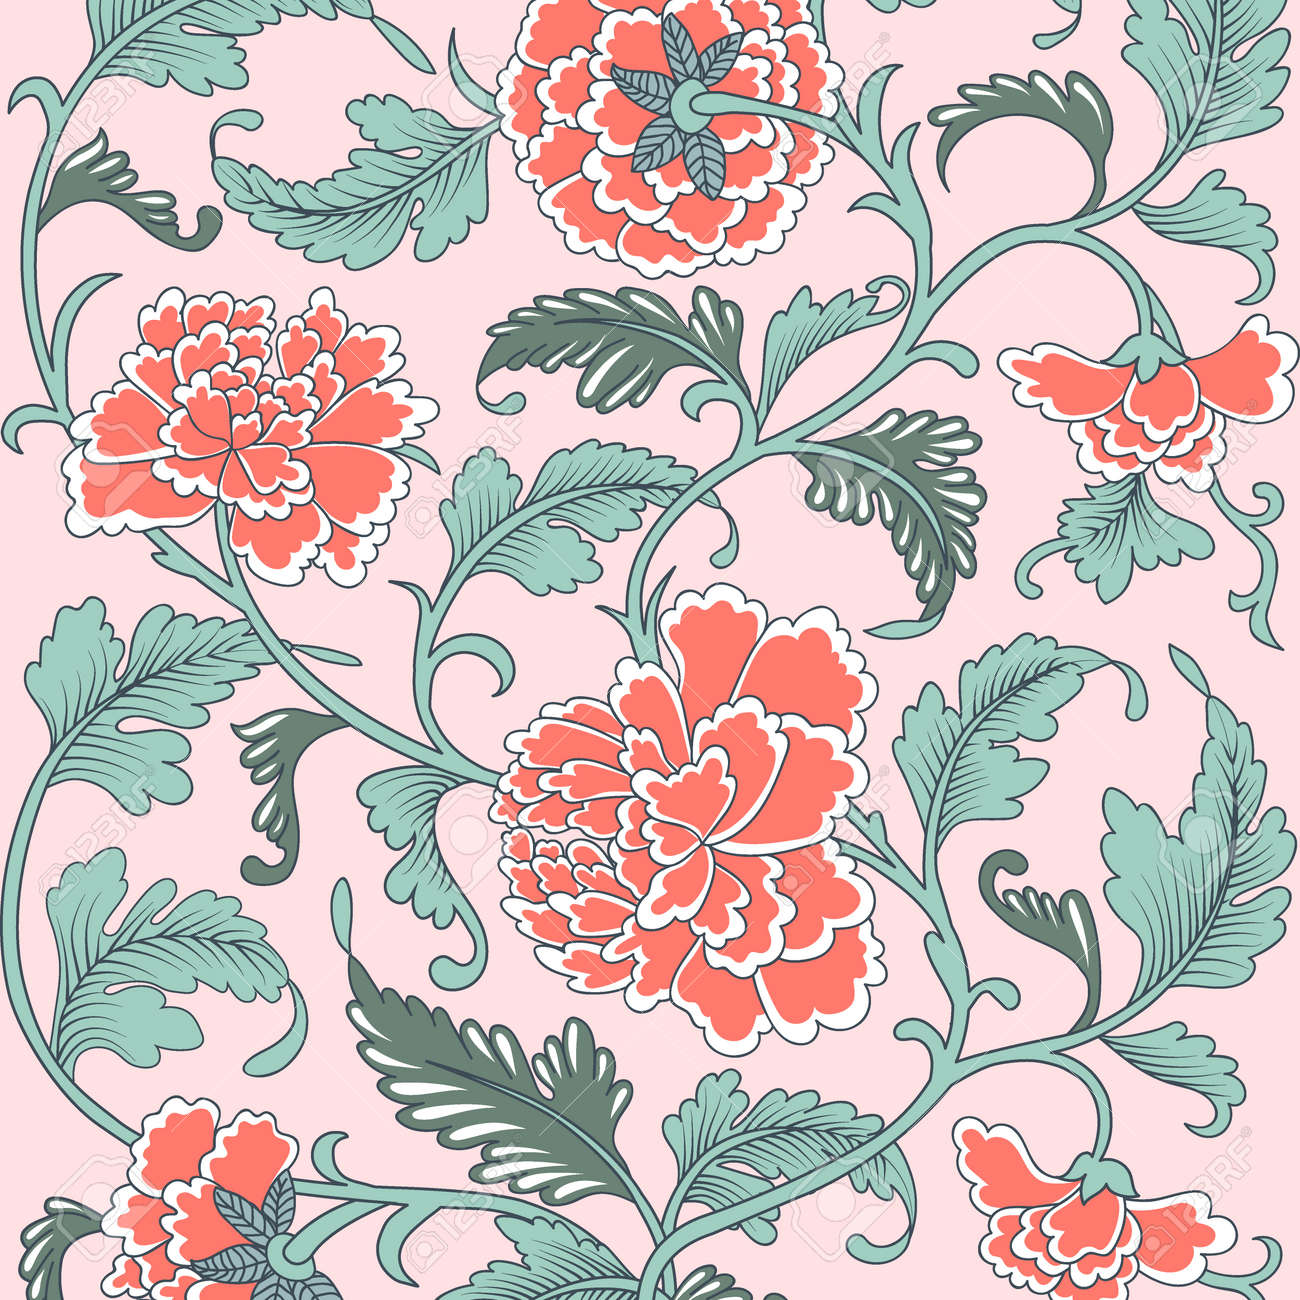 Ornamental beautiful coral color antique floral pattern with peonies. Vector illustration, asian texture for printing on packaging, textiles, paper, covers, manufacturing, wallpapers. - 124281741